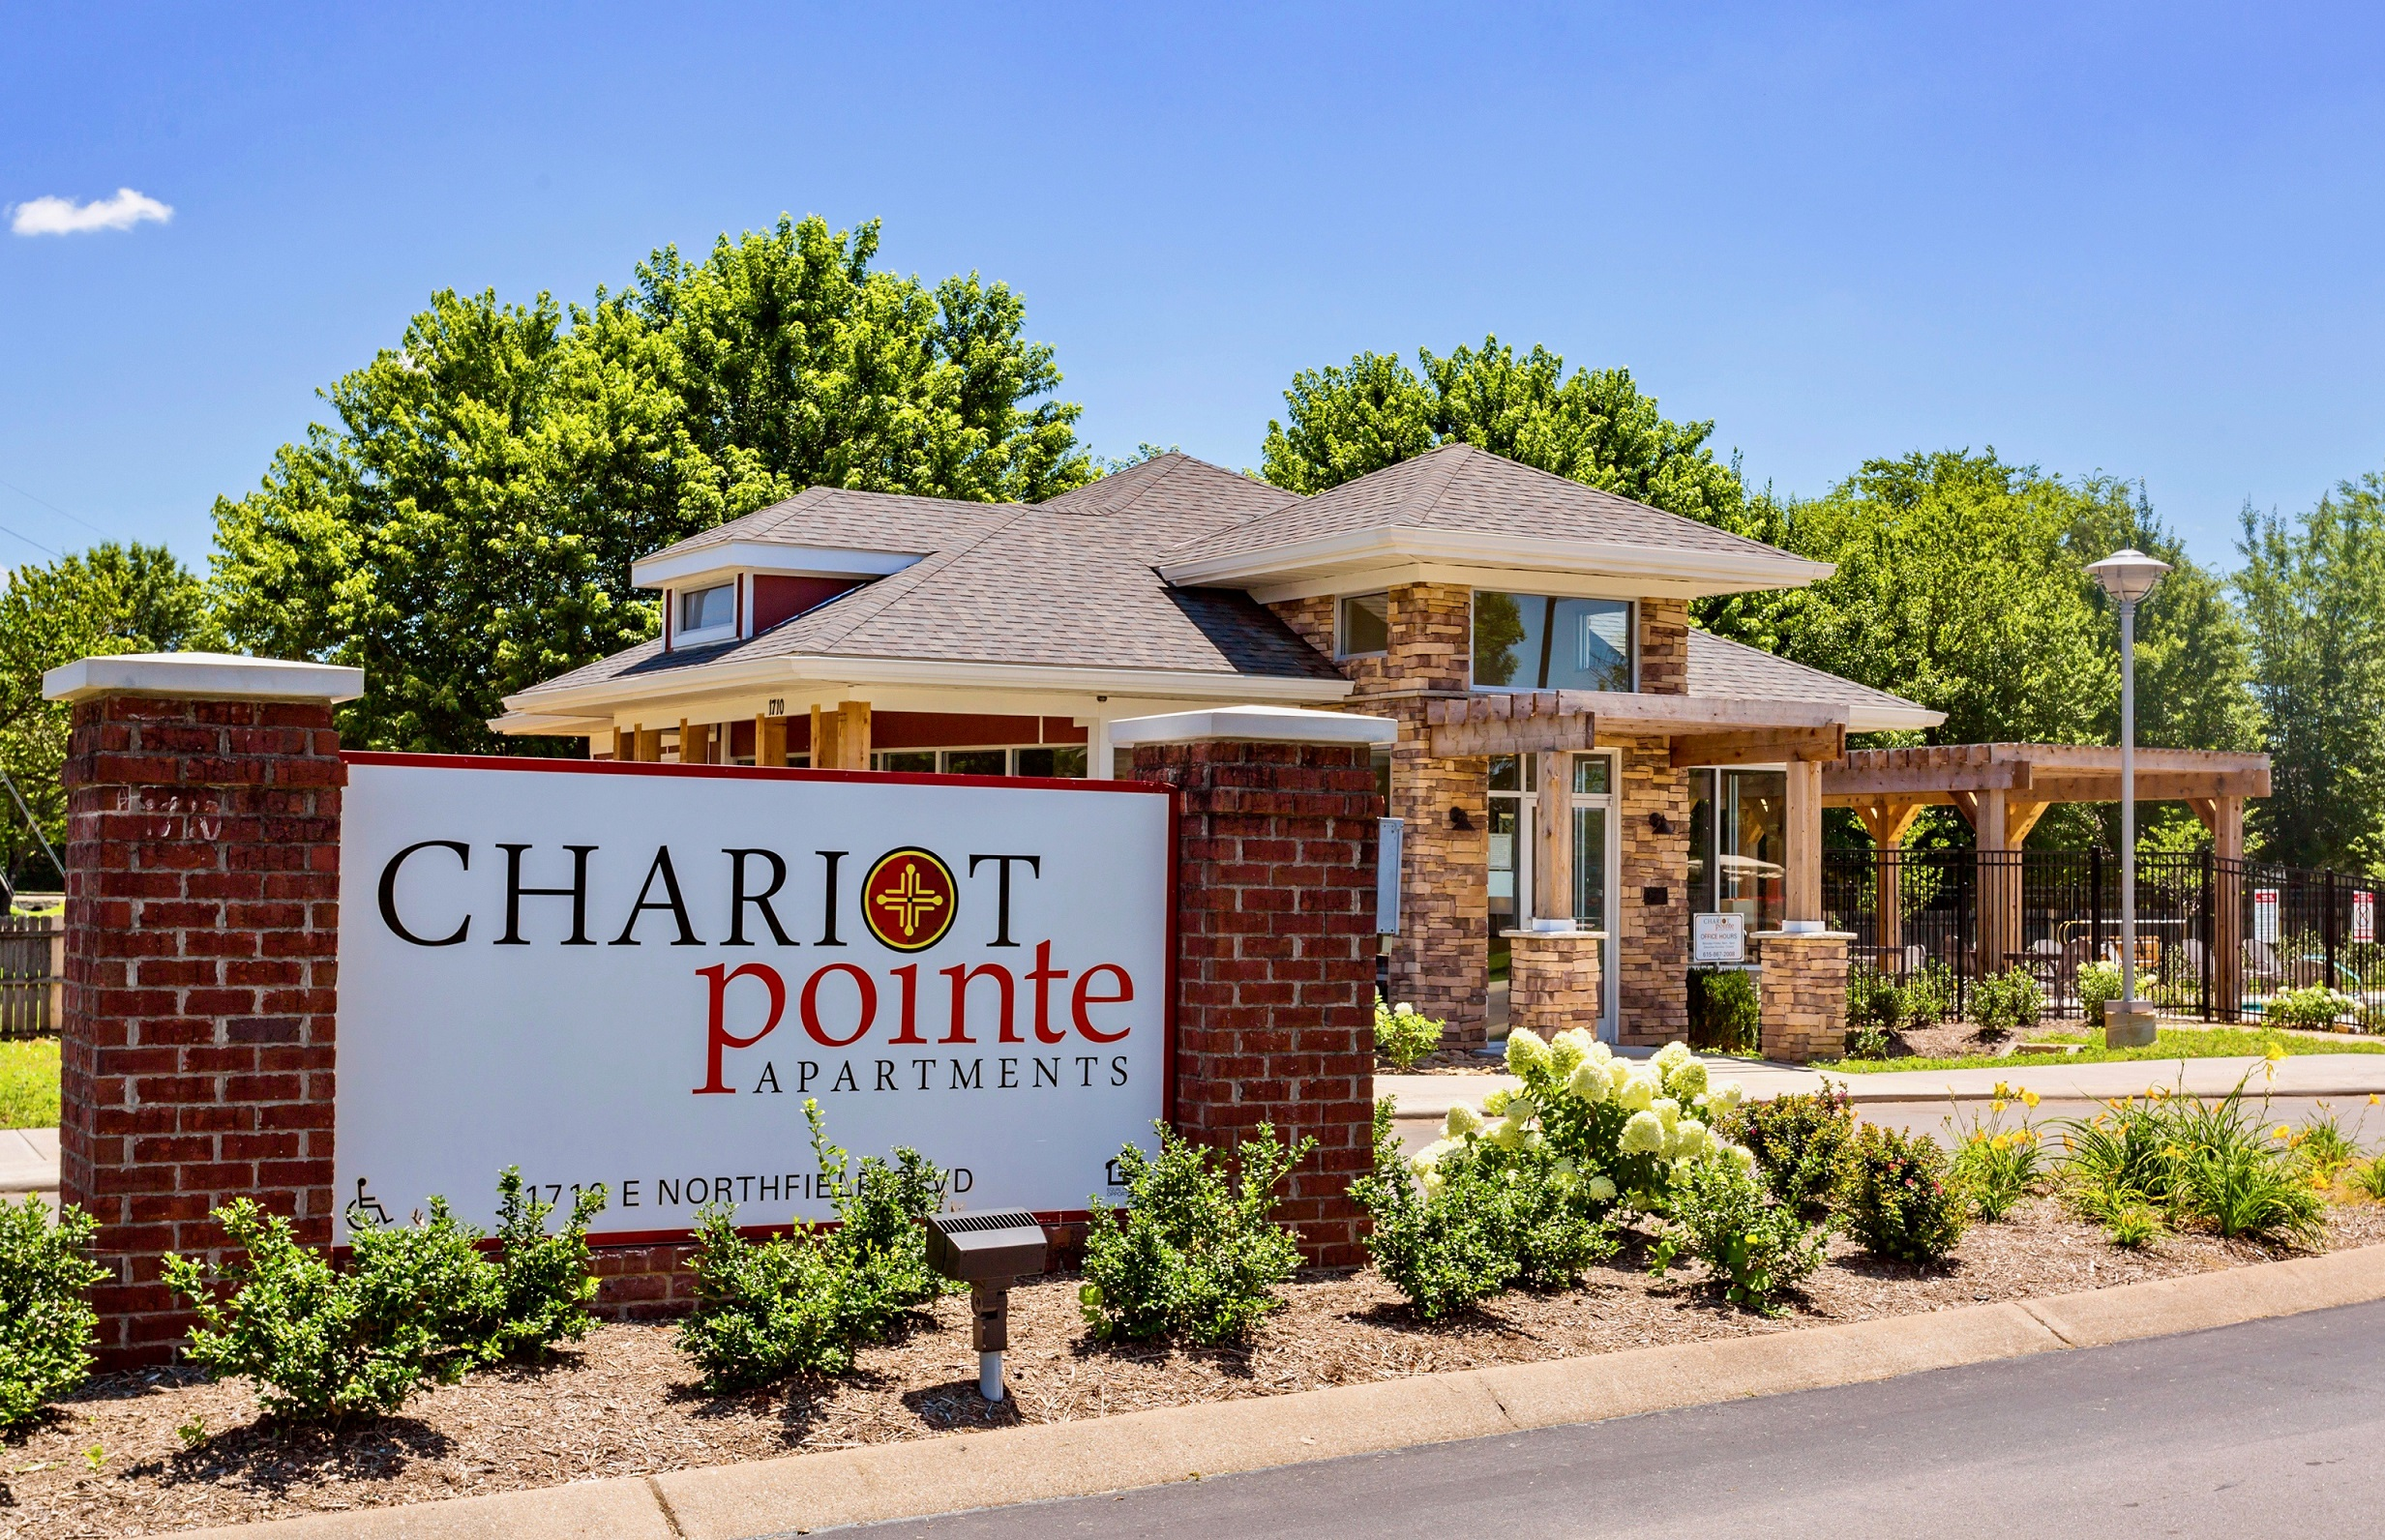 Chariot Pointe Apartments